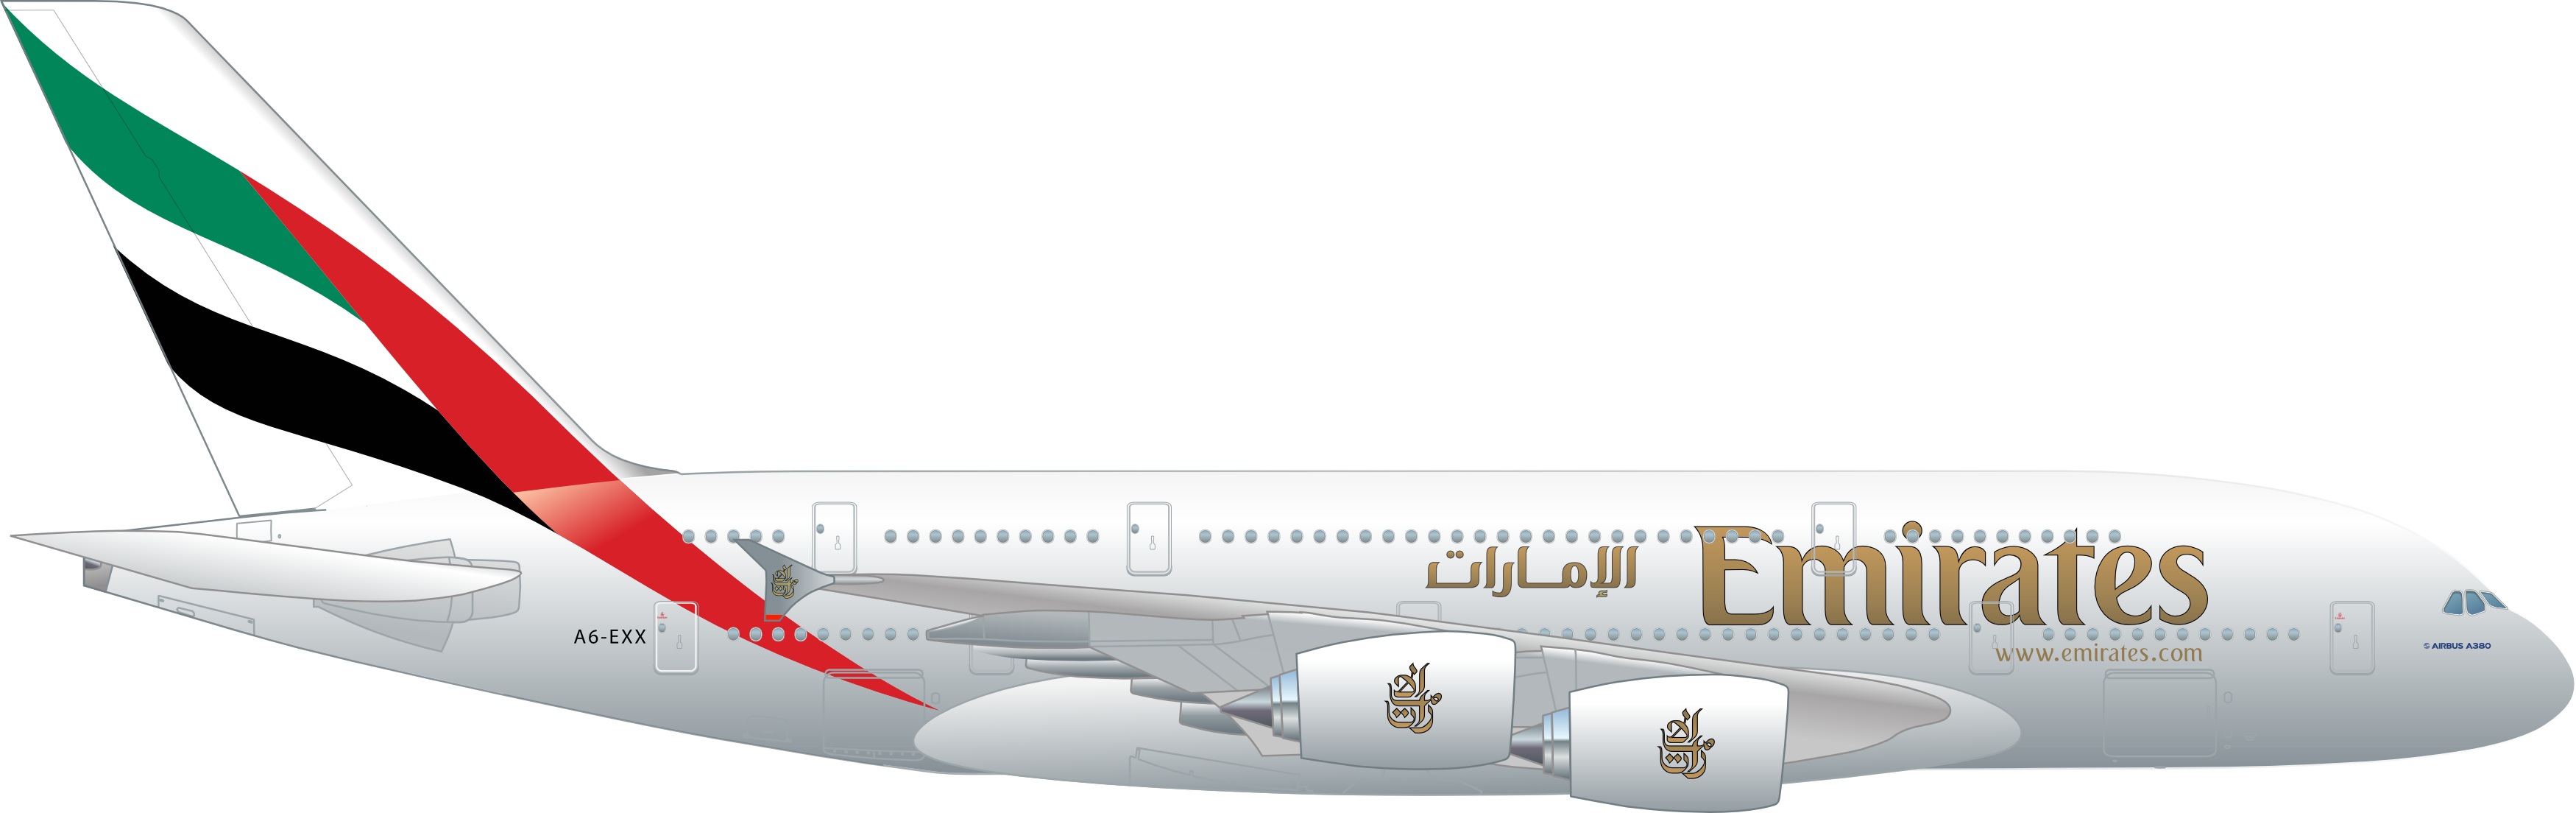 Emirates PNG - 114633